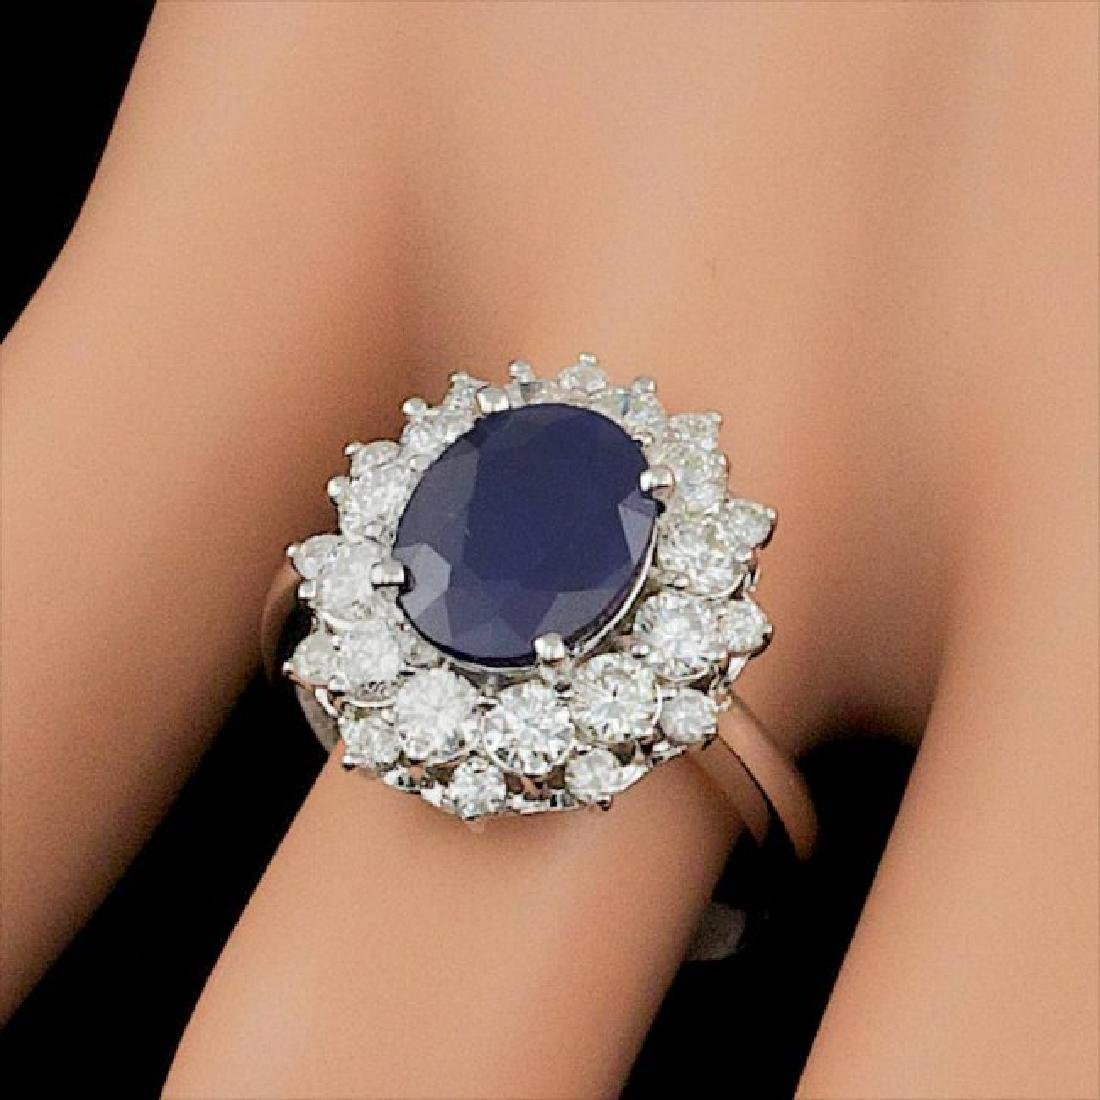 14k Gold 3.00ct Sapphire 1.40ct Diamond Ring - 4